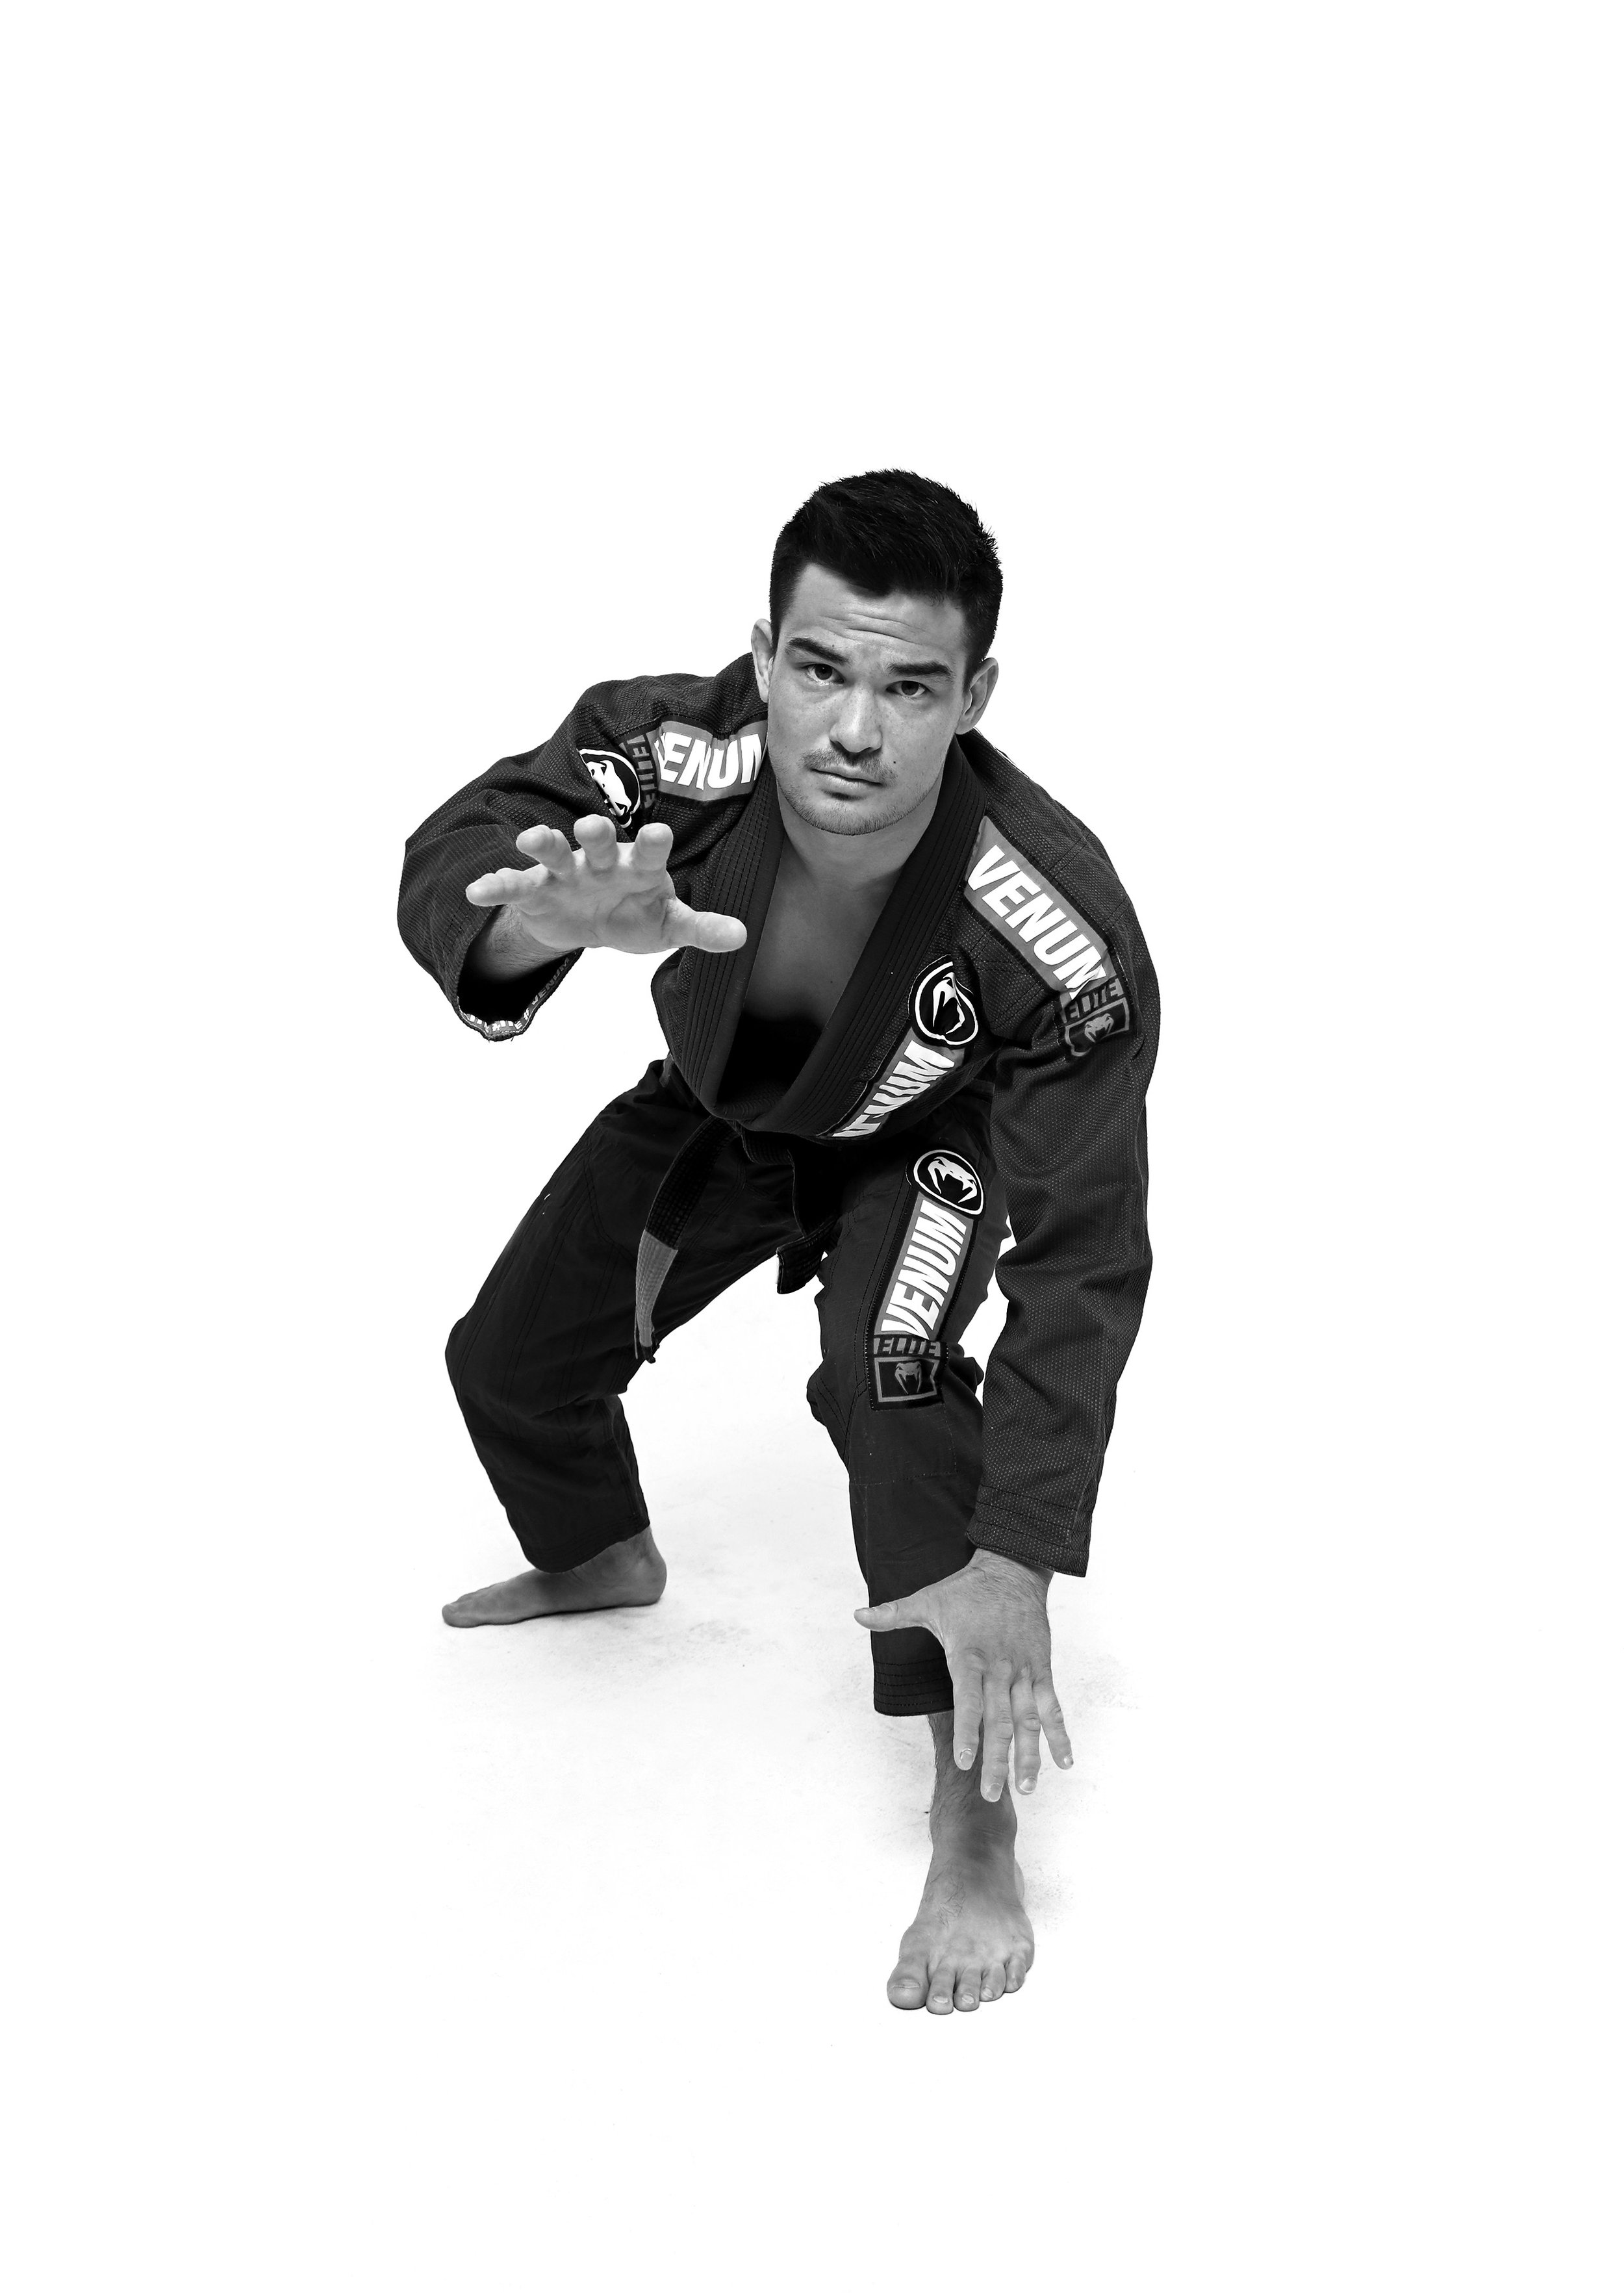 Isaac Doederlein - Professor Isaac Doederlein, an Alliance black belt under the legendary Rubens 'Cobrinha' Charles, is widely regarded as one of the top five featherweight competitors in the world. Isaac got his start in Jiu Jitsu in Arizona under Wellington 'Megaton' Dias, who guided him to winning the Worlds as a blue belt in 2010. As a purple belt, he moved to Los Angeles to train Jiu Jitsu full time under Cobrinha. Since earning his black belt, Professor Isaac has won multiple IBJJF tournaments, defeating some of the biggest names in the modern Brazilian Jiu Jitsu circuit.